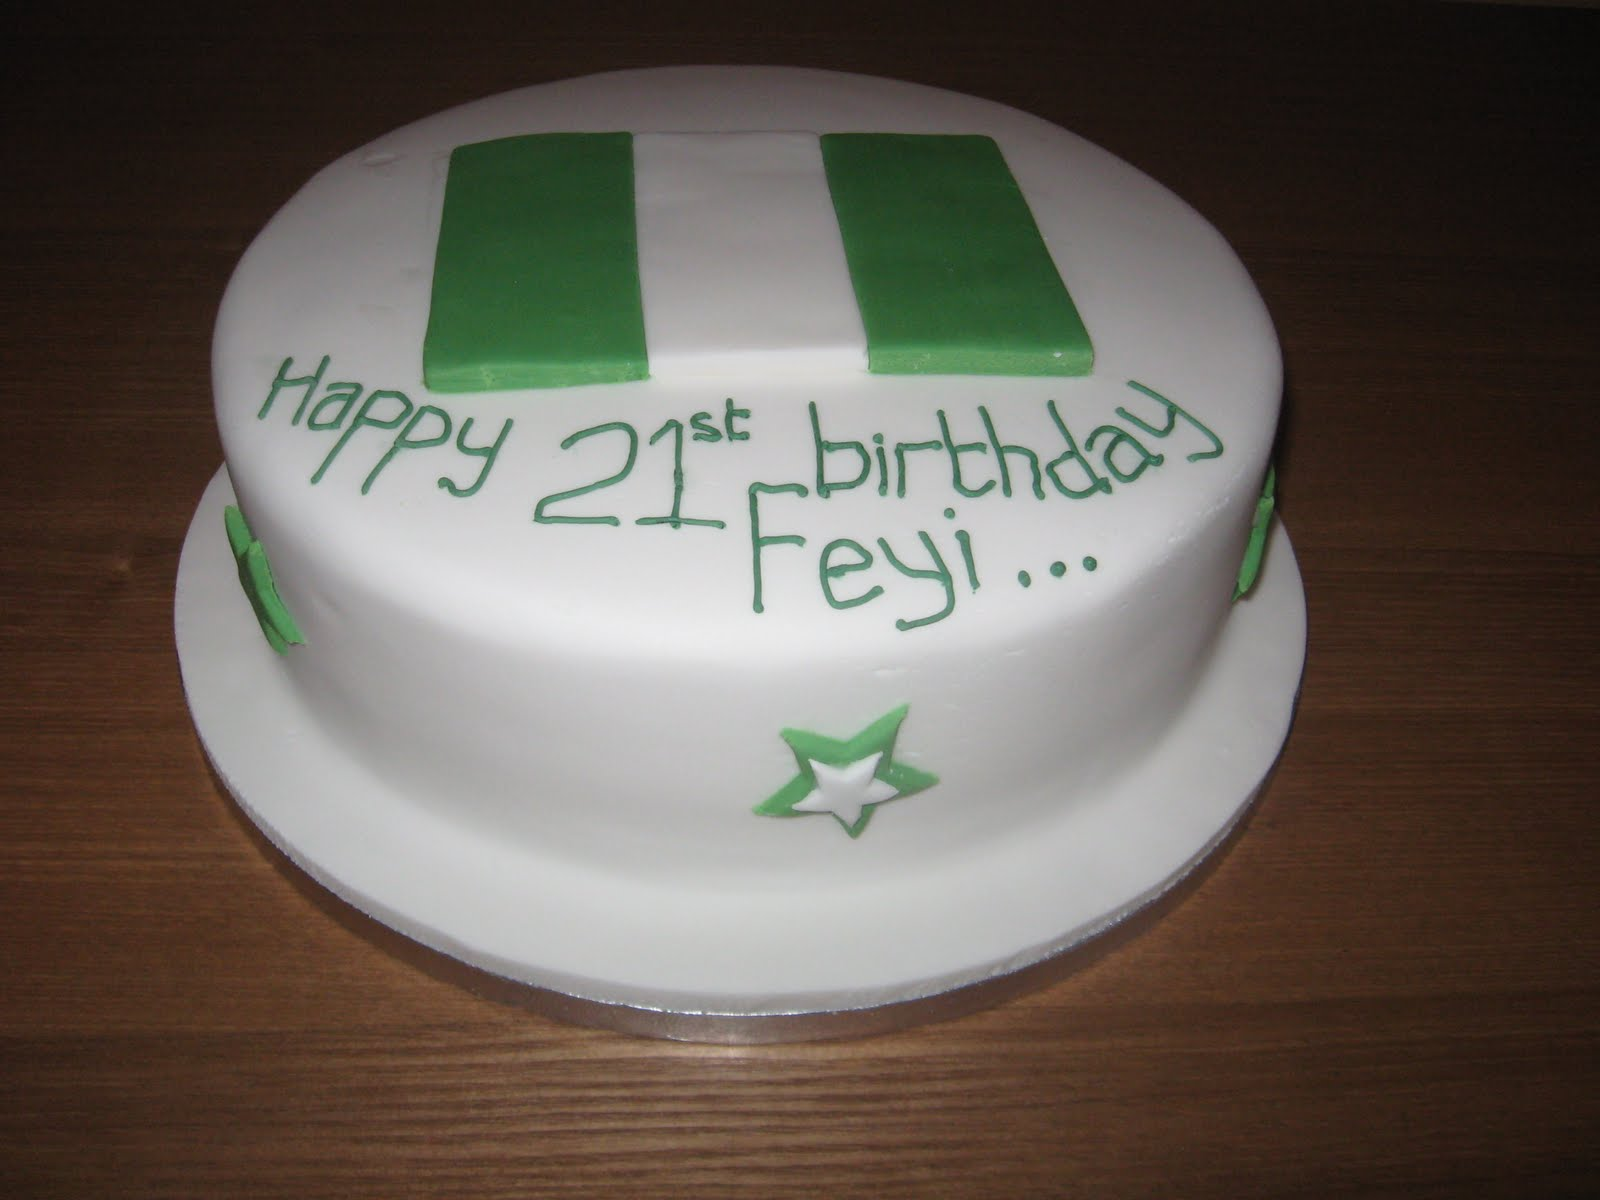 The Great Cake Experience Nigerian Flag Cake